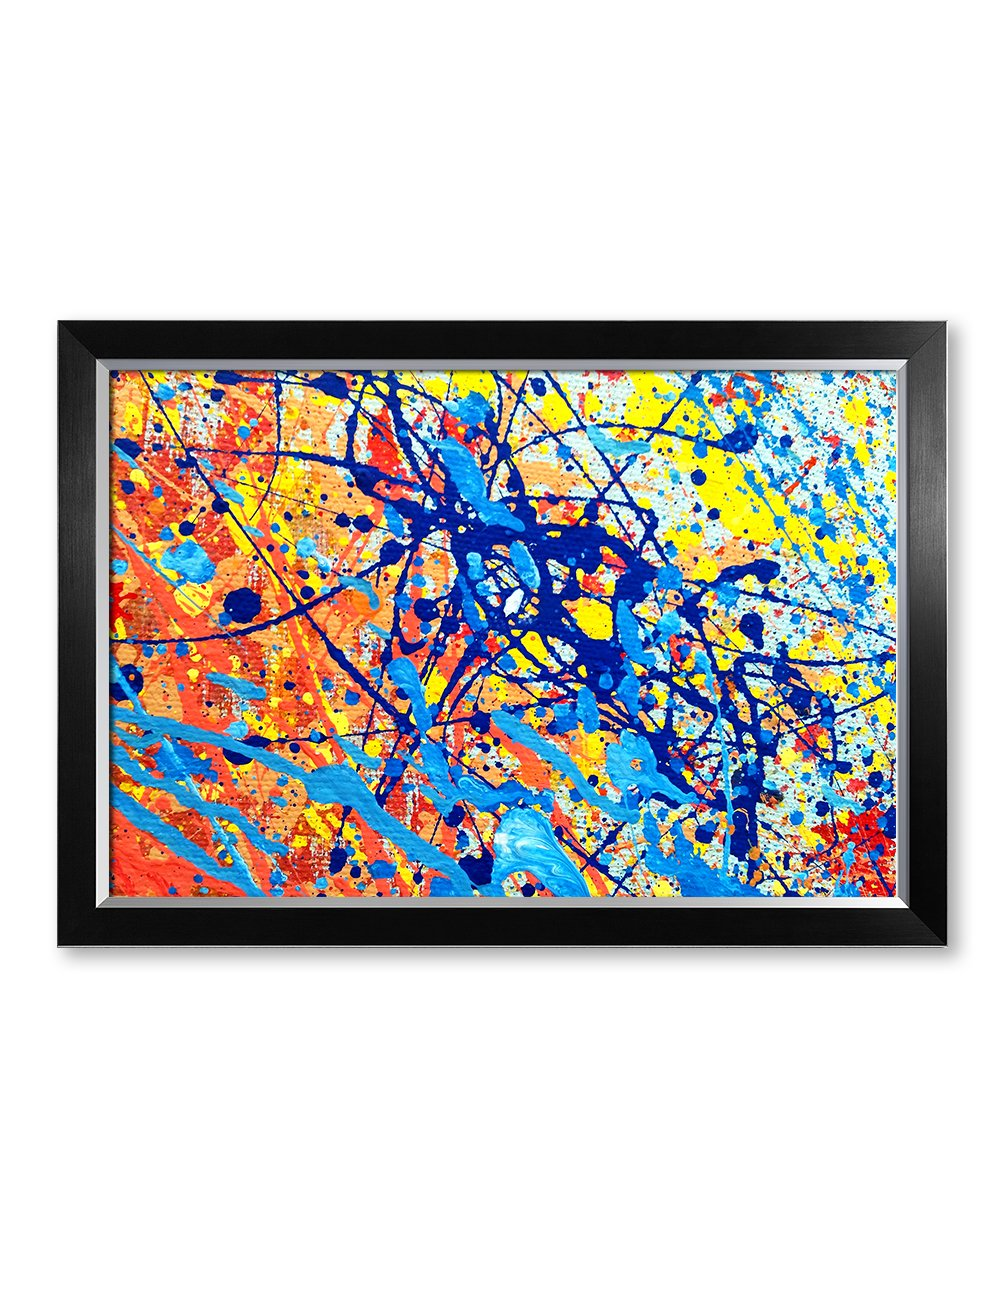 IPIC - Abstract Jackson Pollock Style Artwork. Giclee Print on Canvas Wall Art for Home Decor. Framed size: 33x23''